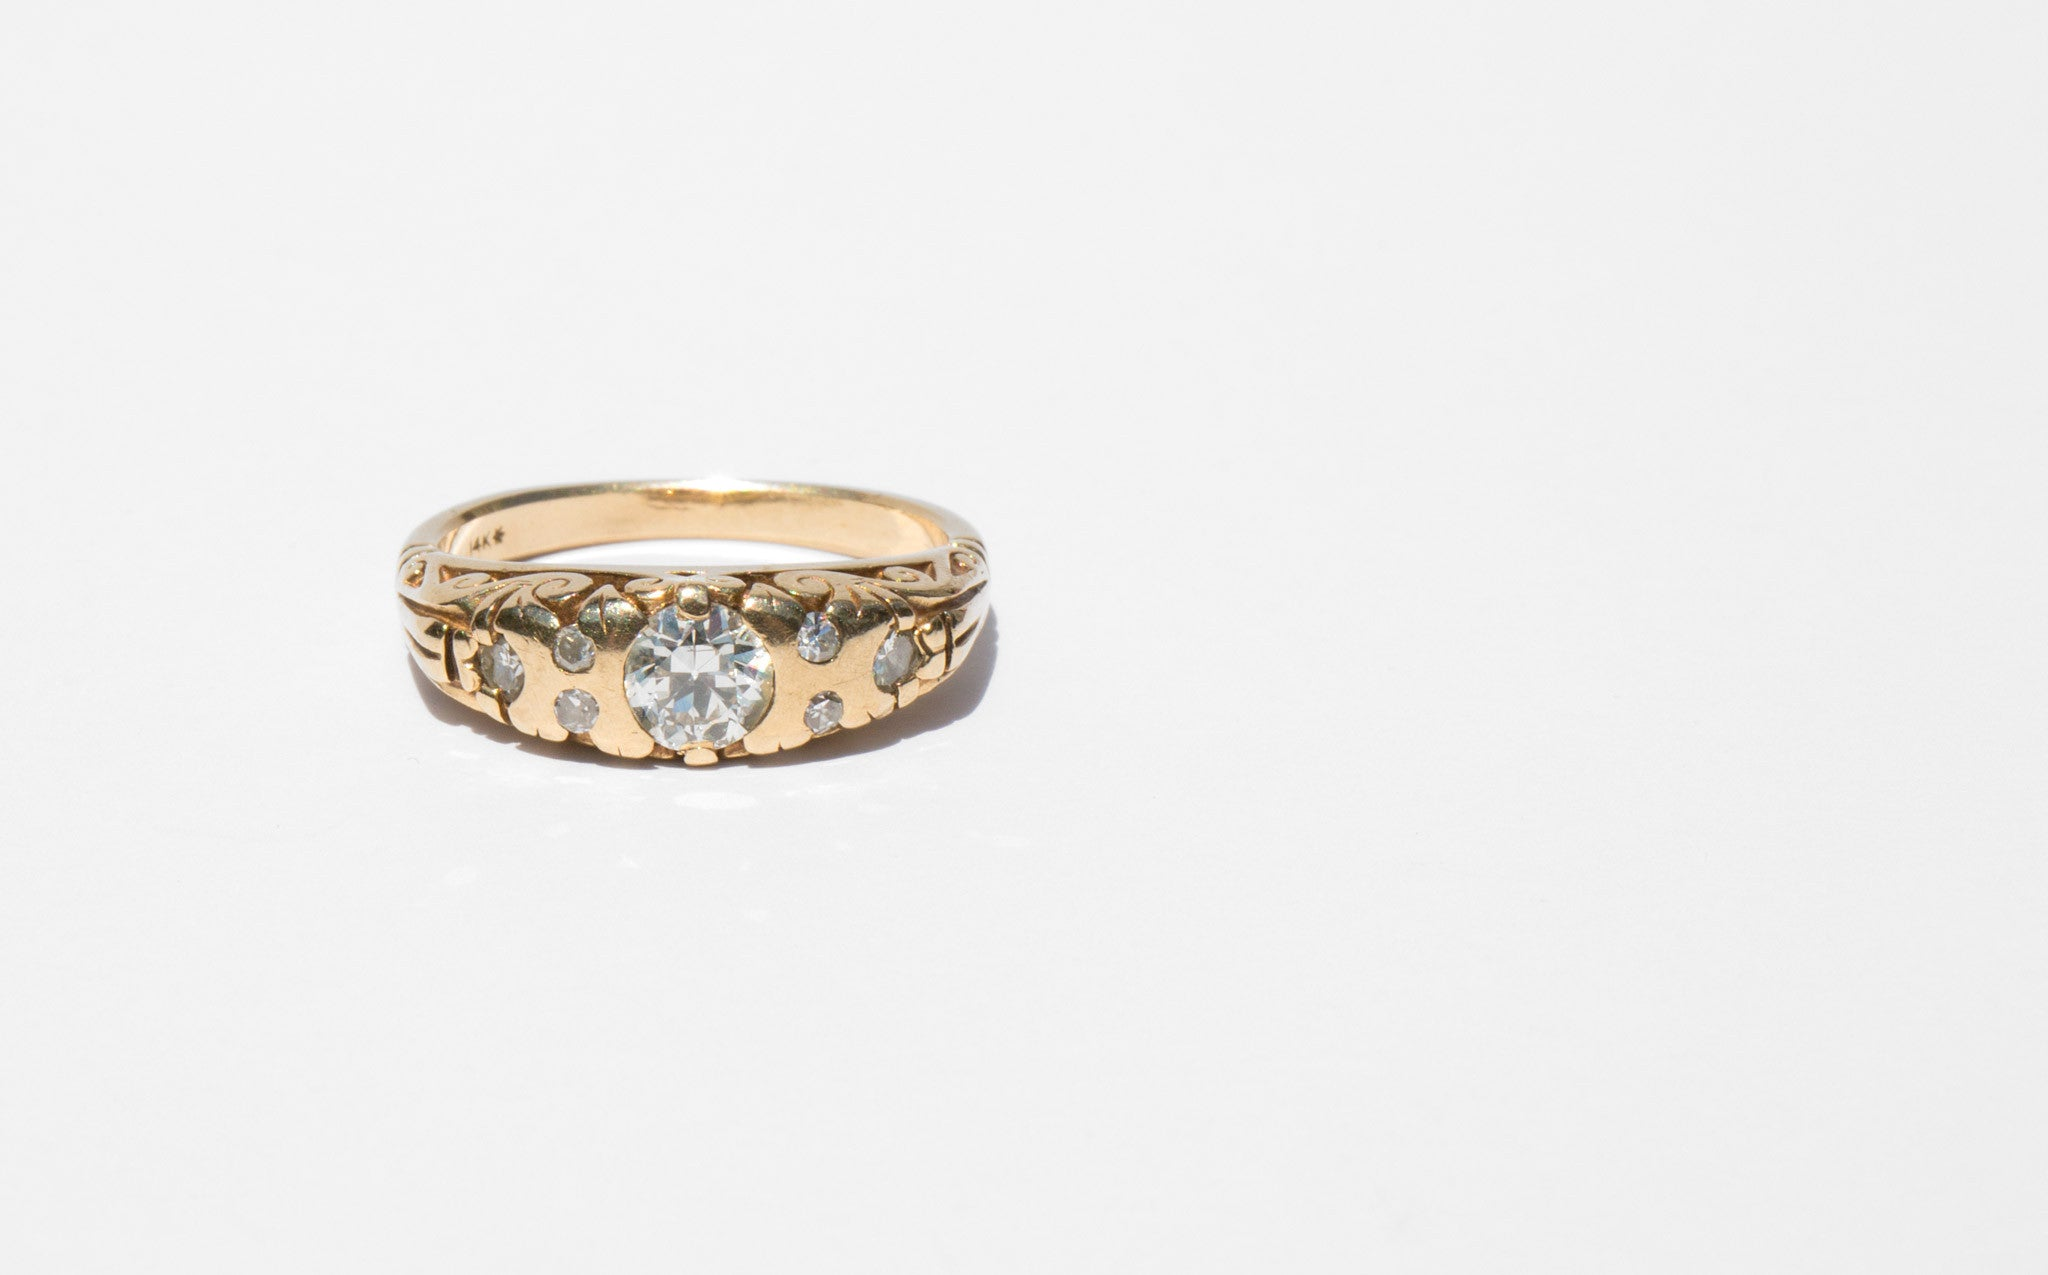 14k Greek Revival Gold and Diamond Ring